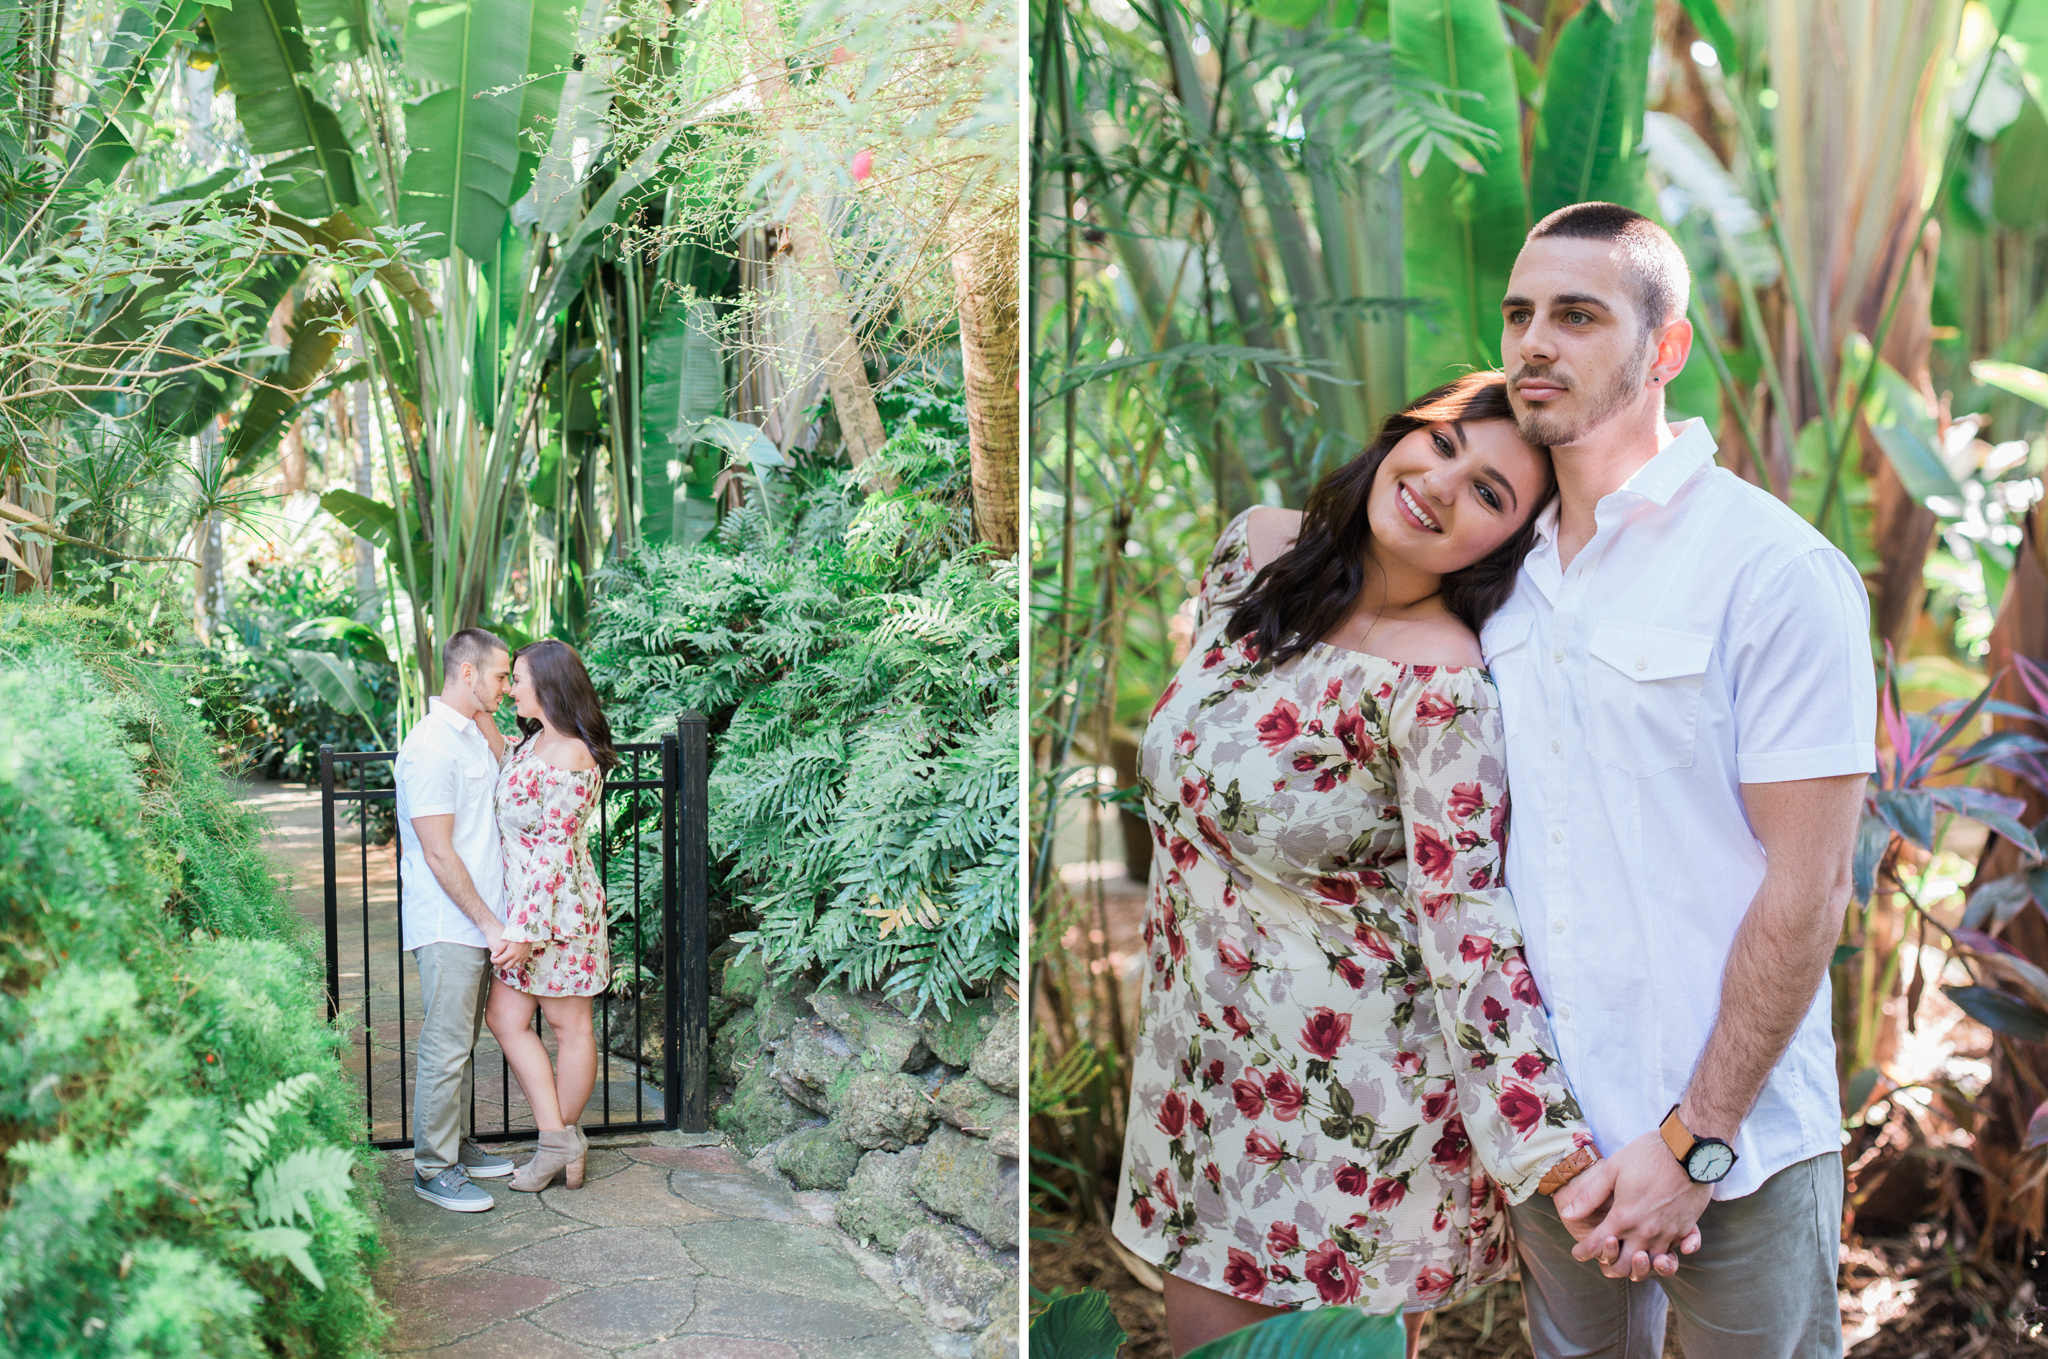 Caitlyn+Mike Engagement Session-WG-3.jpg